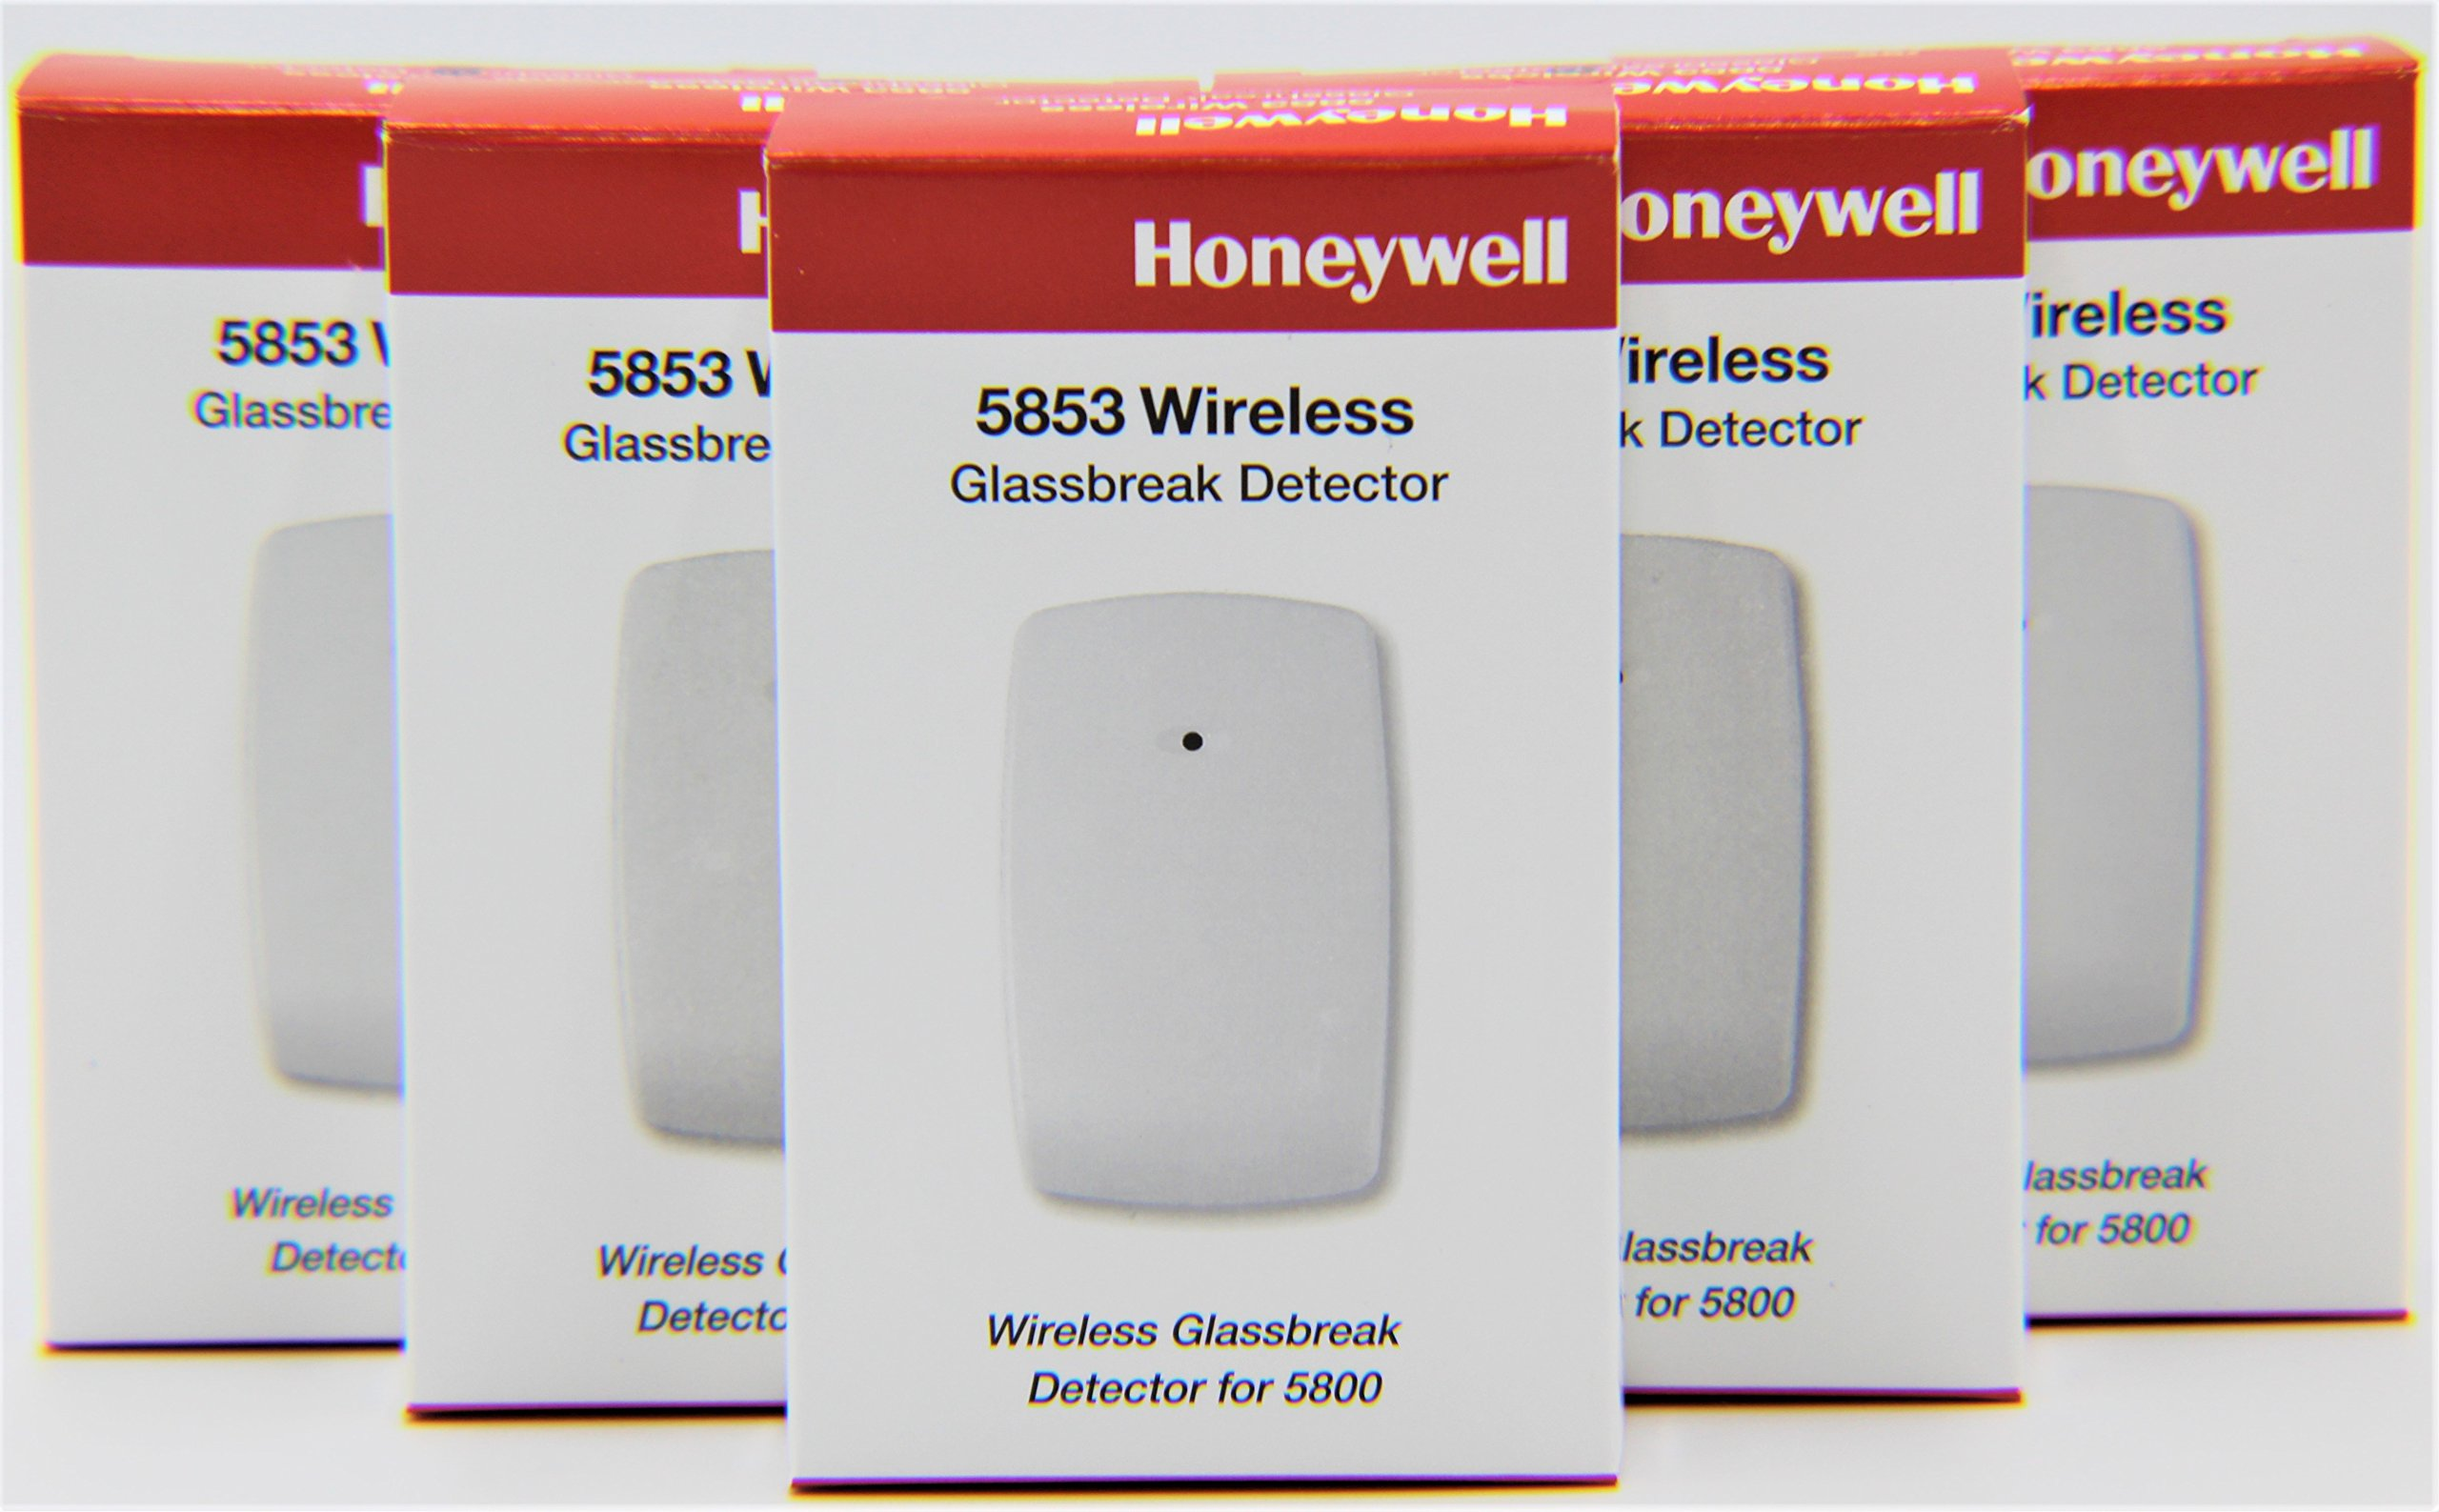 5 Pack of Honeywell 5853 Wireless Glassbreak Detector W/Mounting Tape by Honeywell